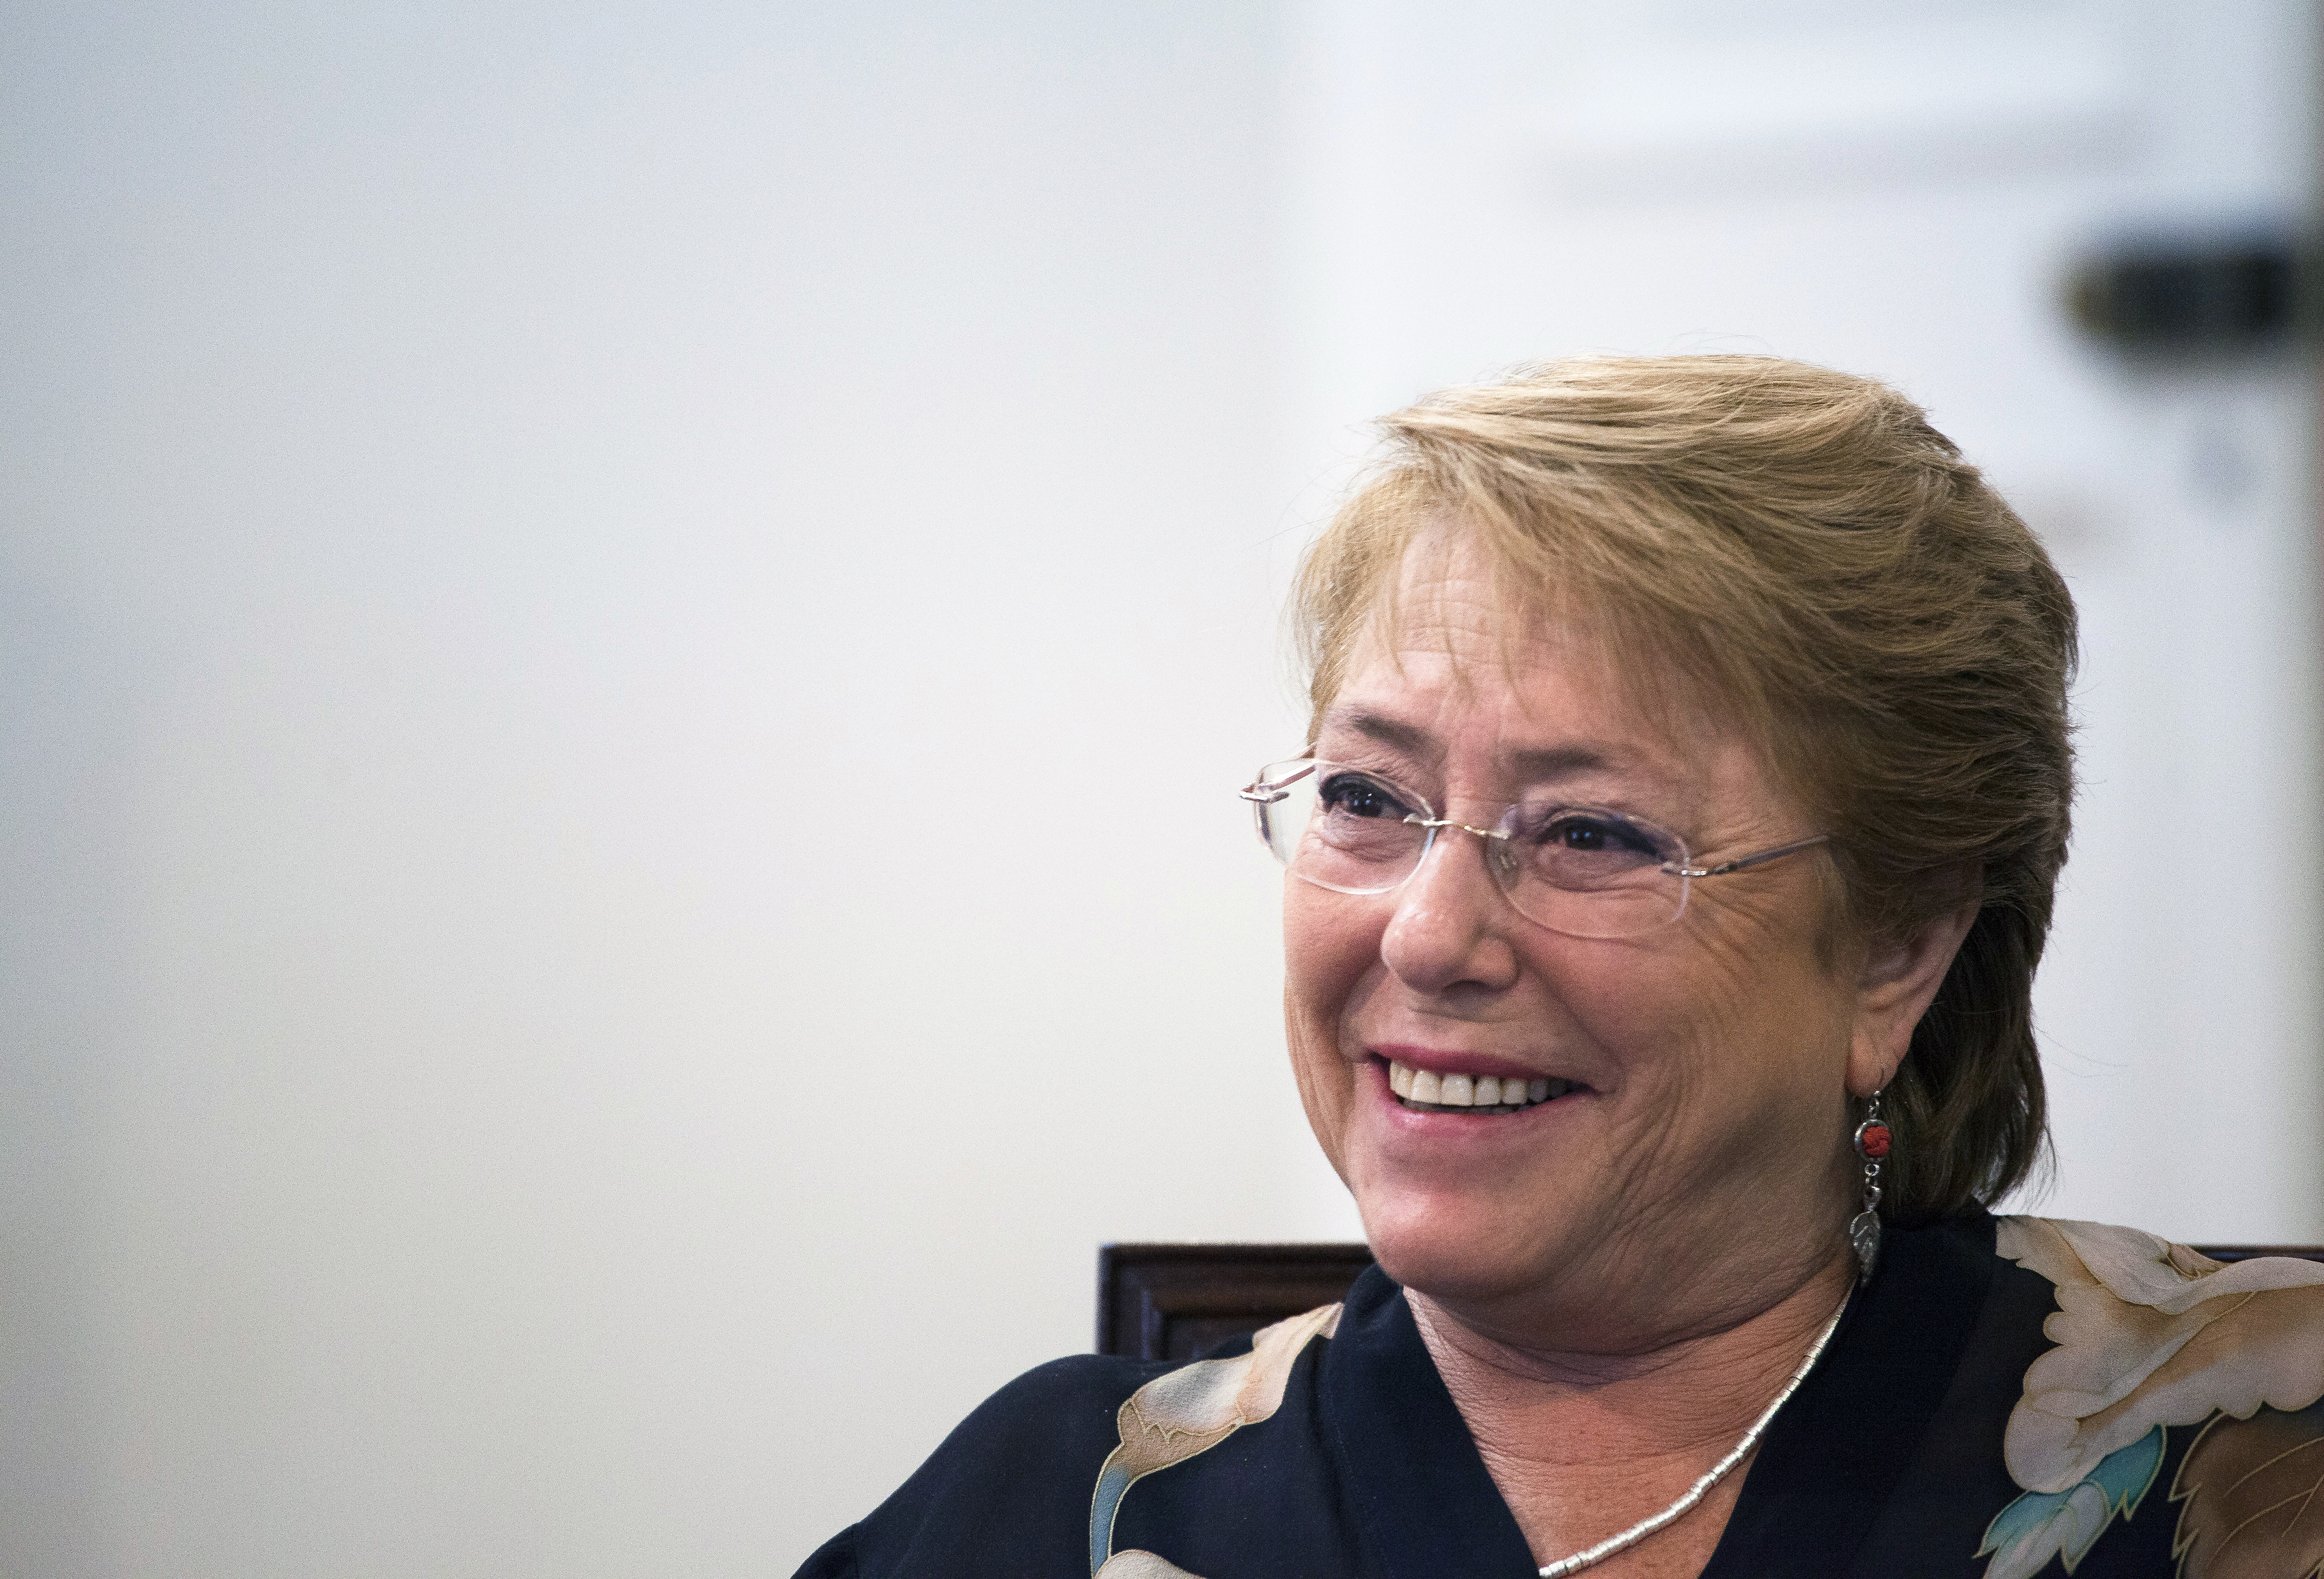 Michelle Bachelet, president of Chile, smiles during an interview at La Moneda Palace in Santiago, Chile, on Friday, Jan. 20, 2017.